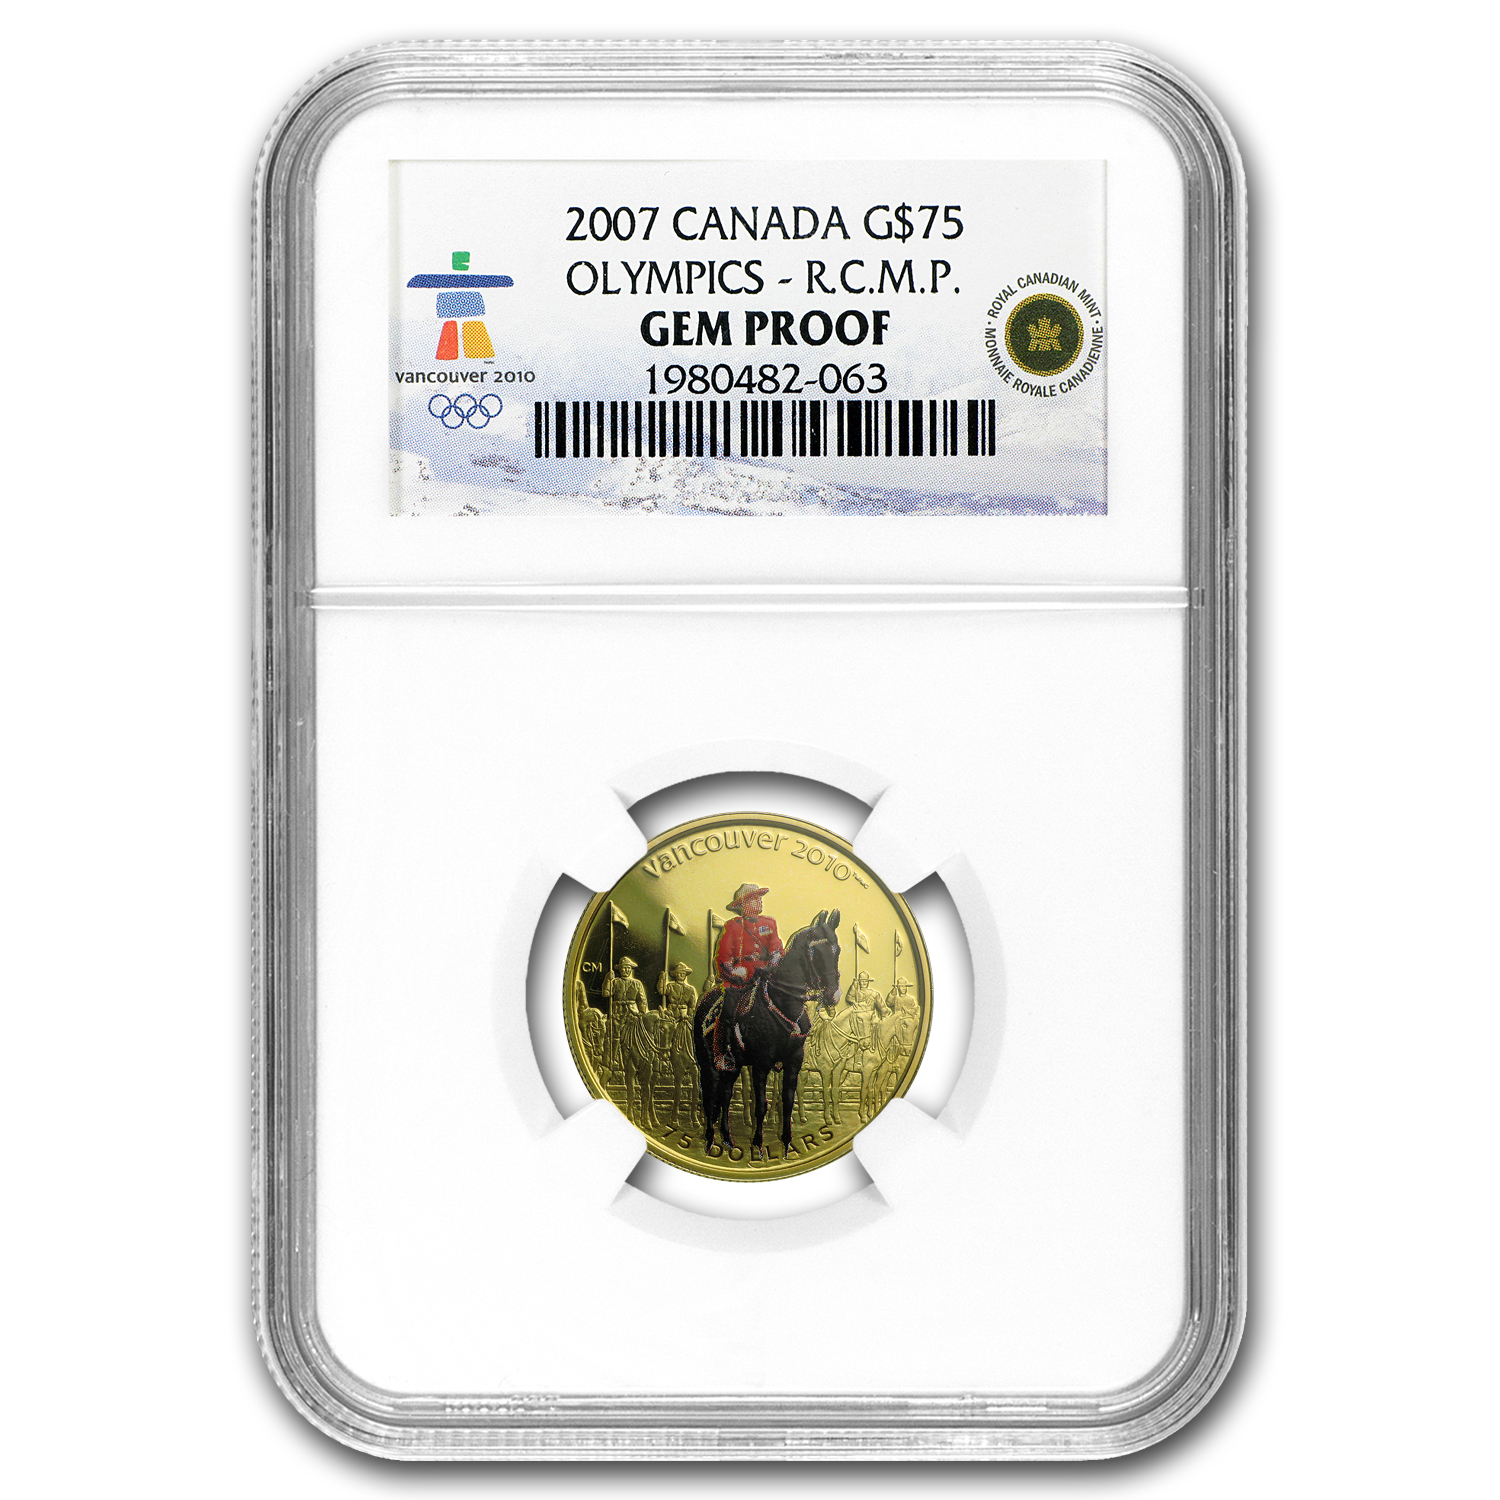 2007 Canada Gold $75 Olympics RC Mounted Police Gem Proof NGC